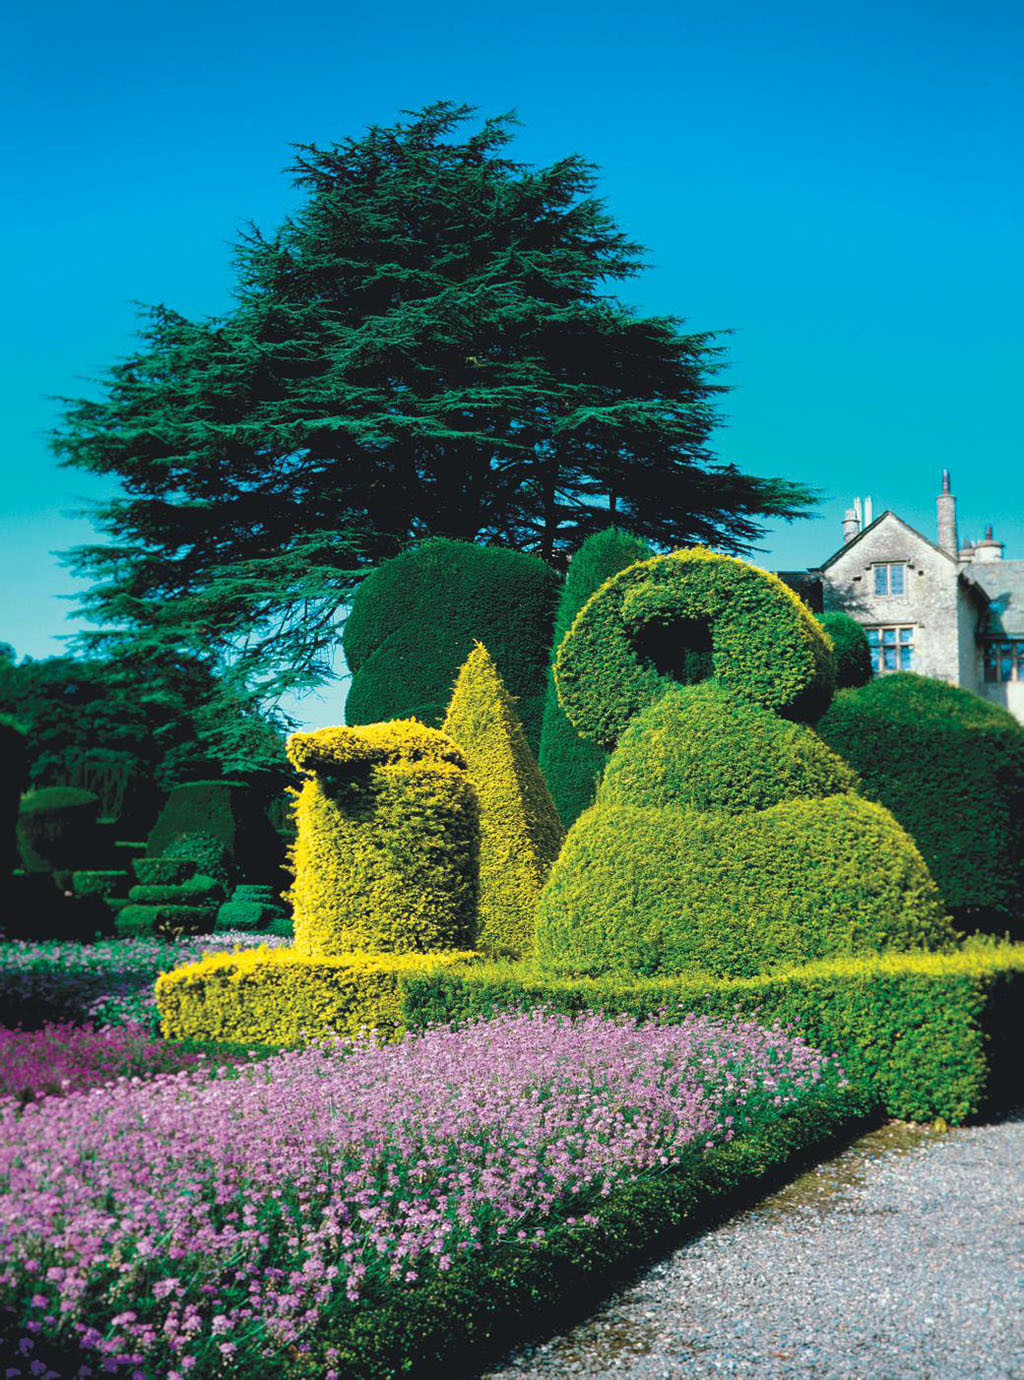 Topiary Gardens: On the Cutting Edge - British Heritage Travel on